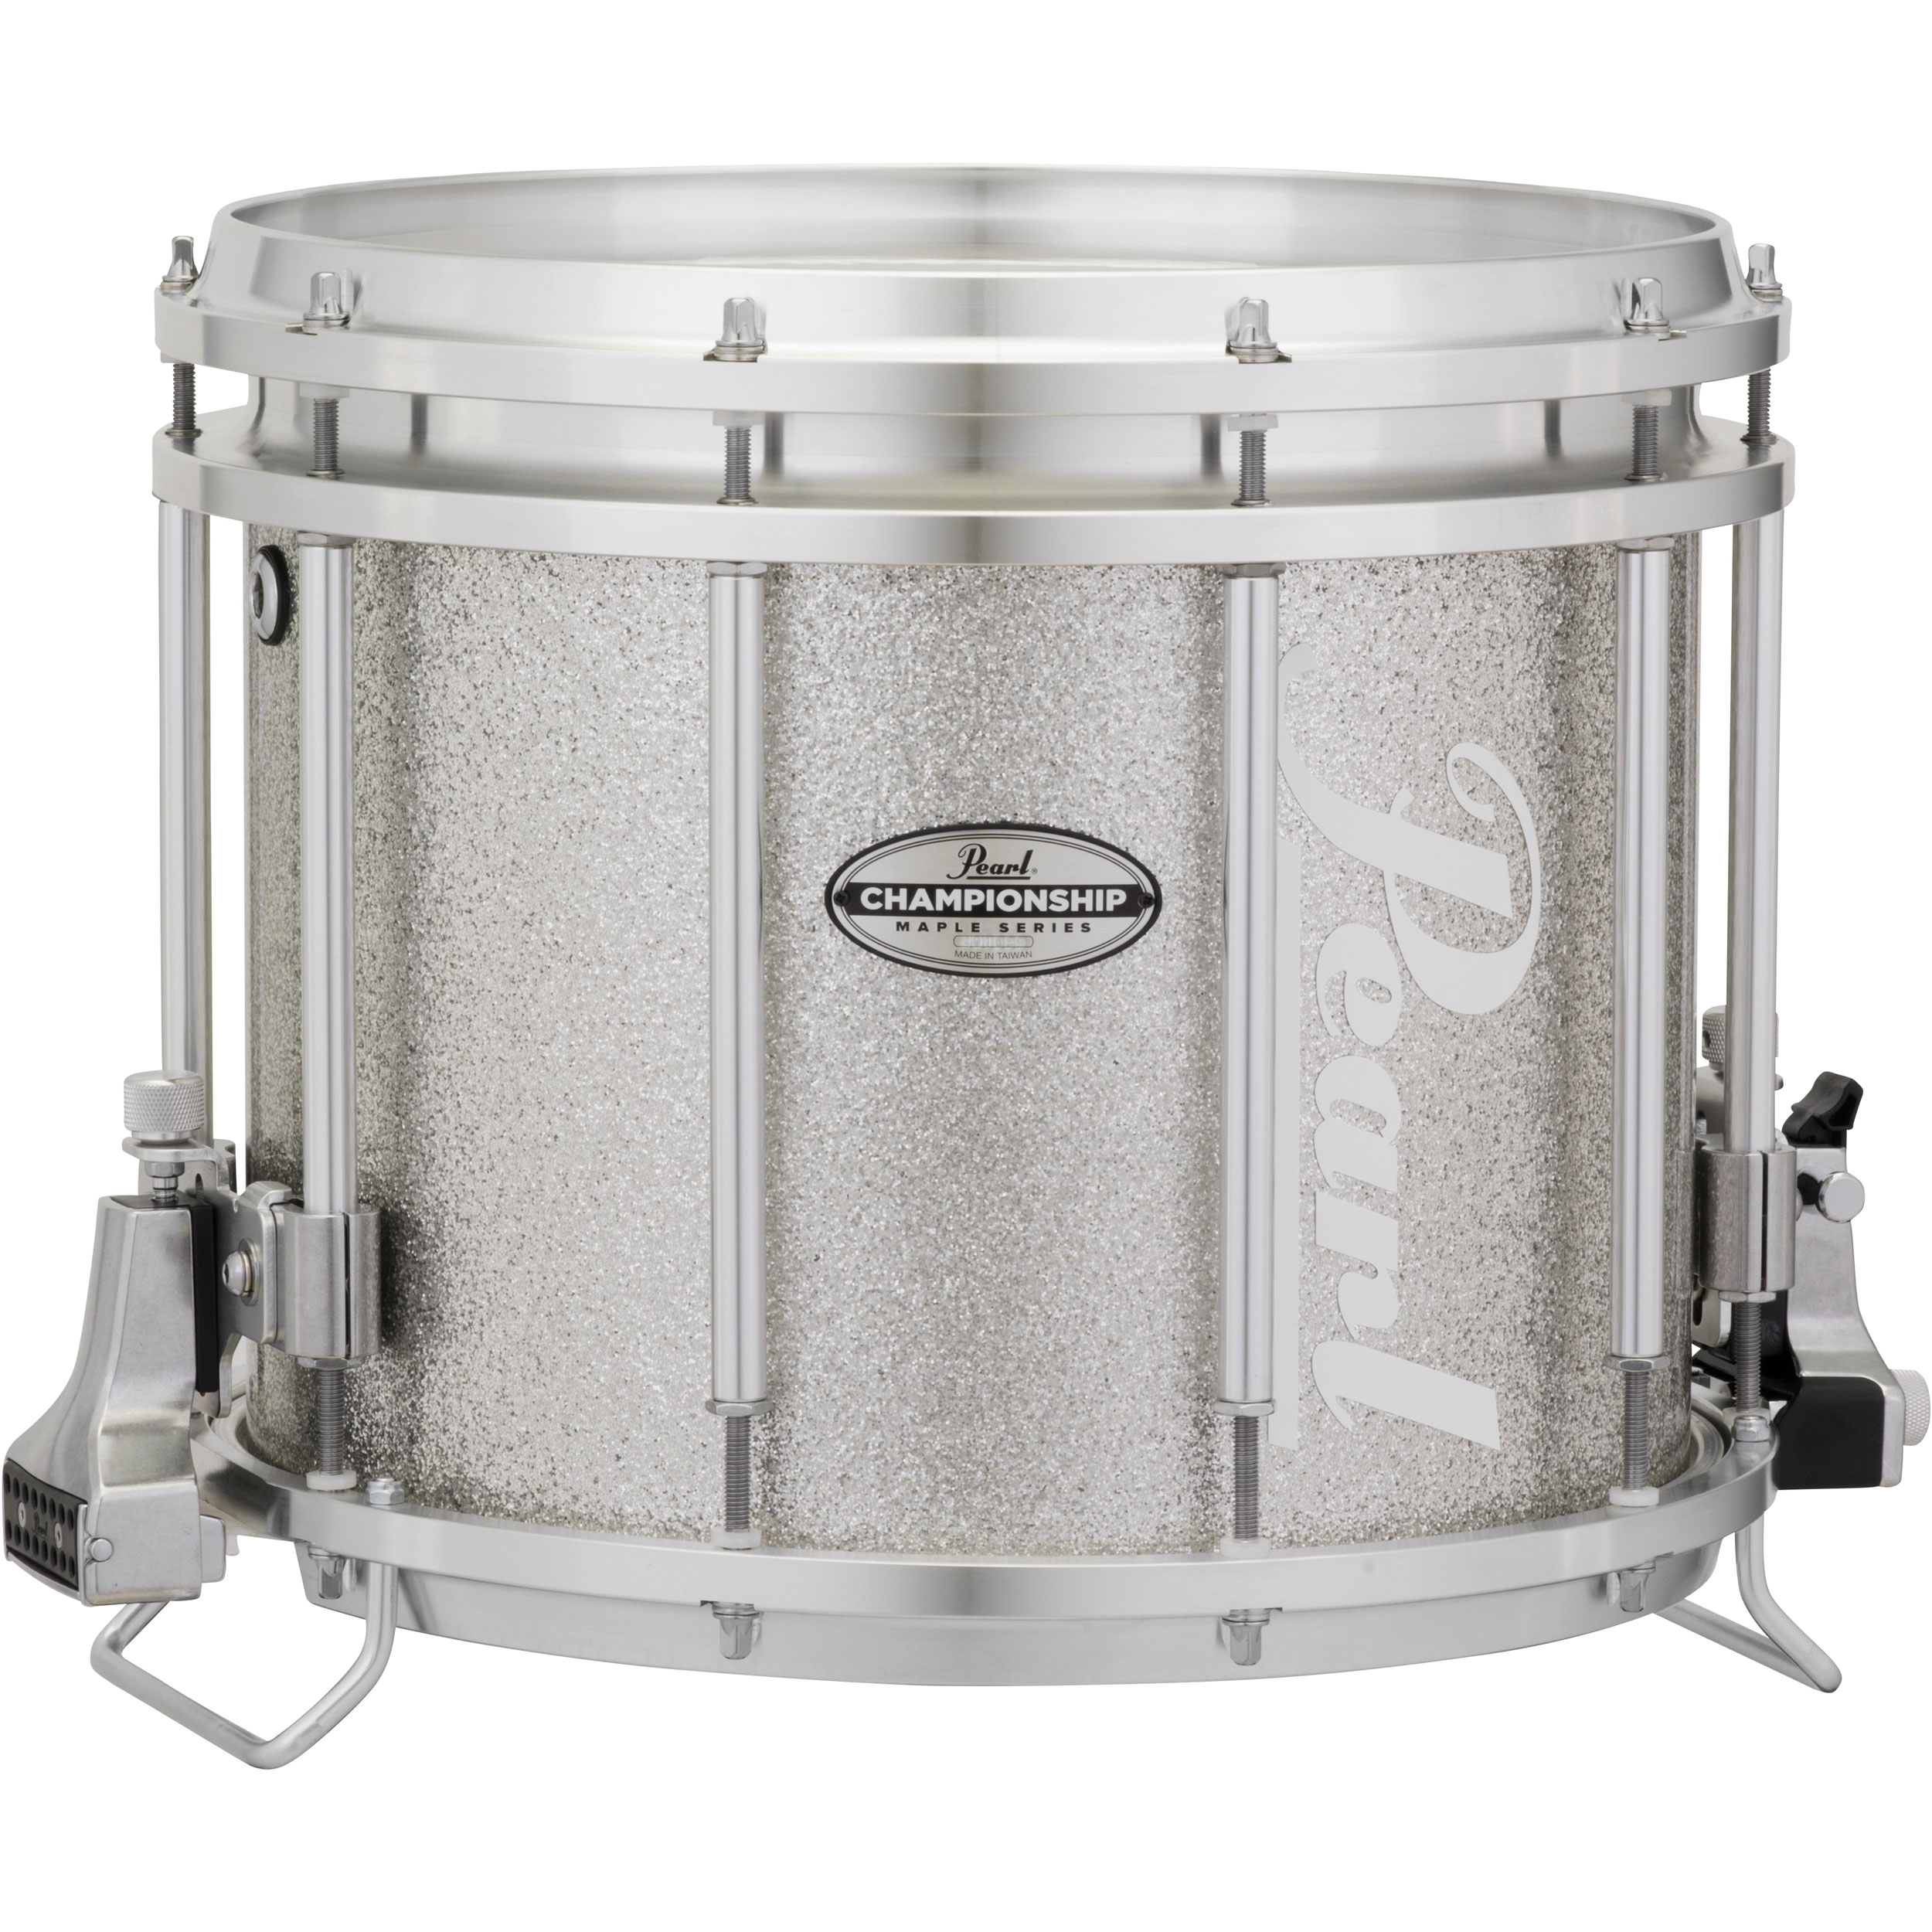 "Pearl 13"" (Diameter) x 11"" (Deep) FFXM Championship Maple Marching Snare Drum in Silver Sparkle"